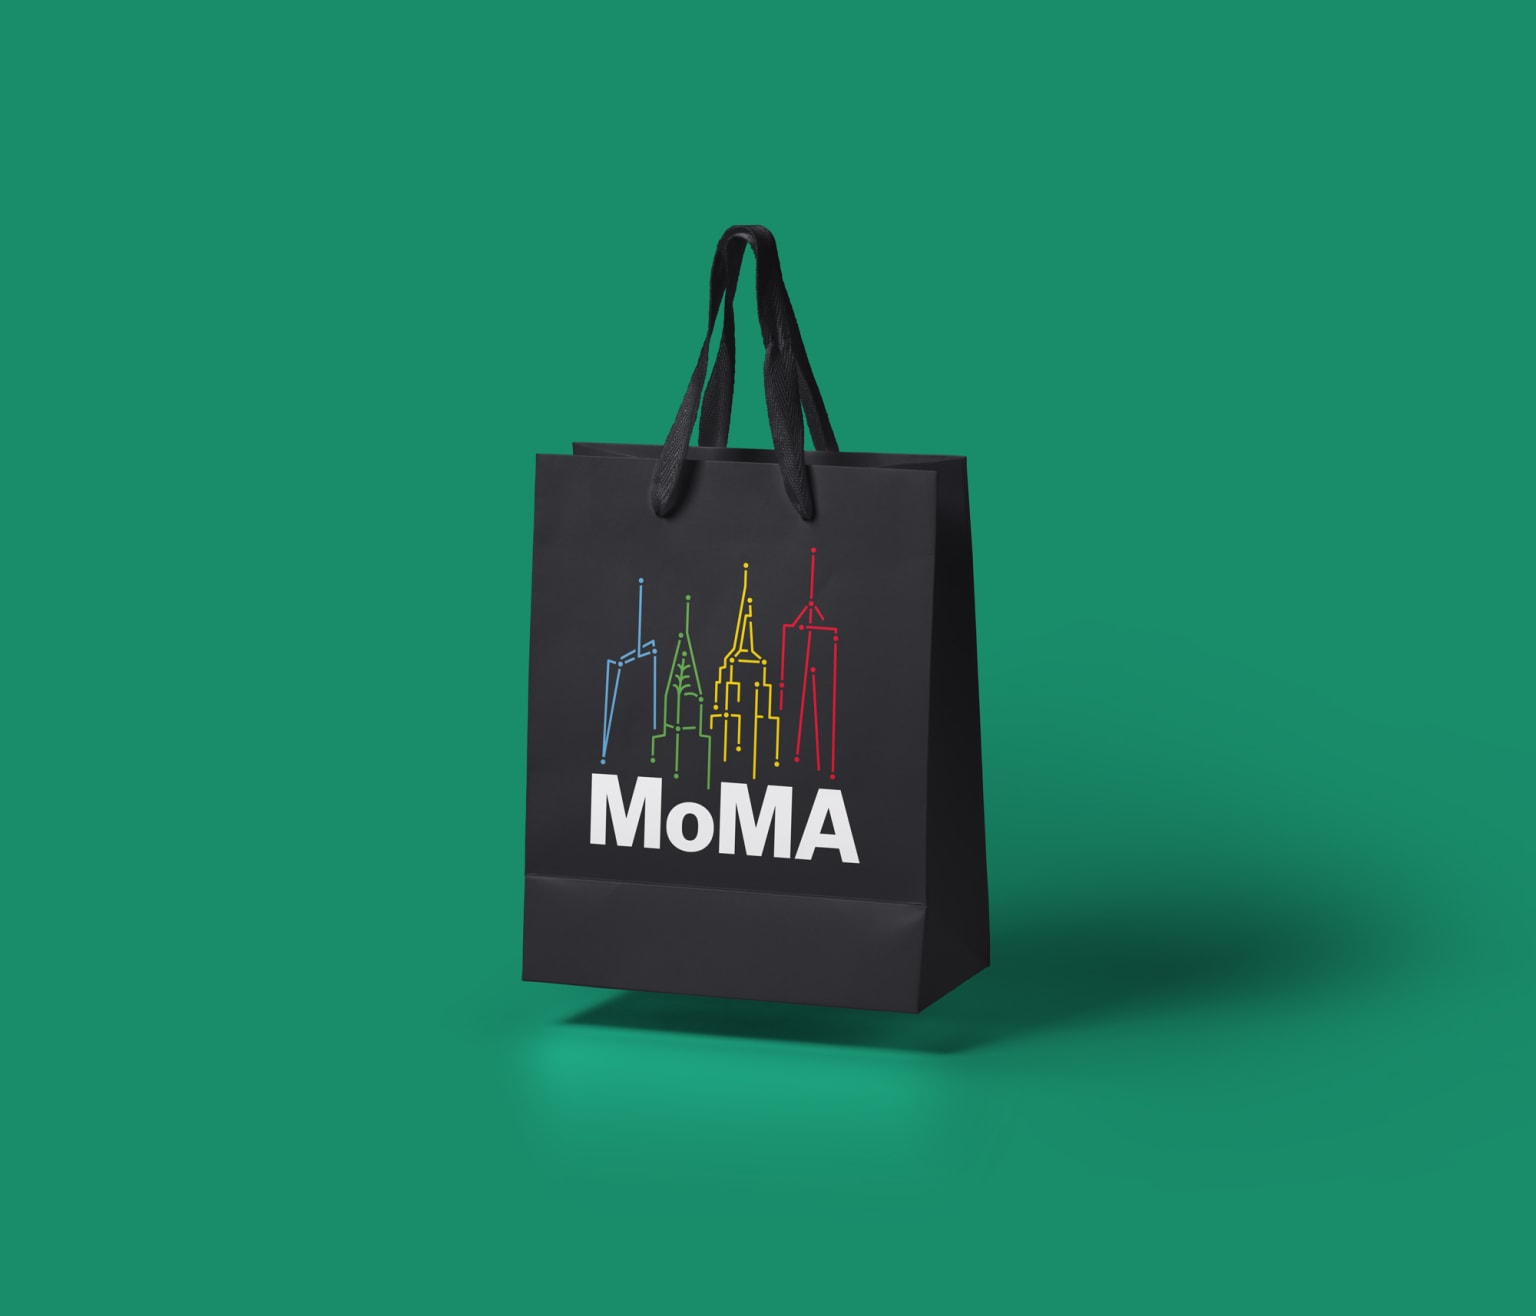 Logo for the MoMA Design Store